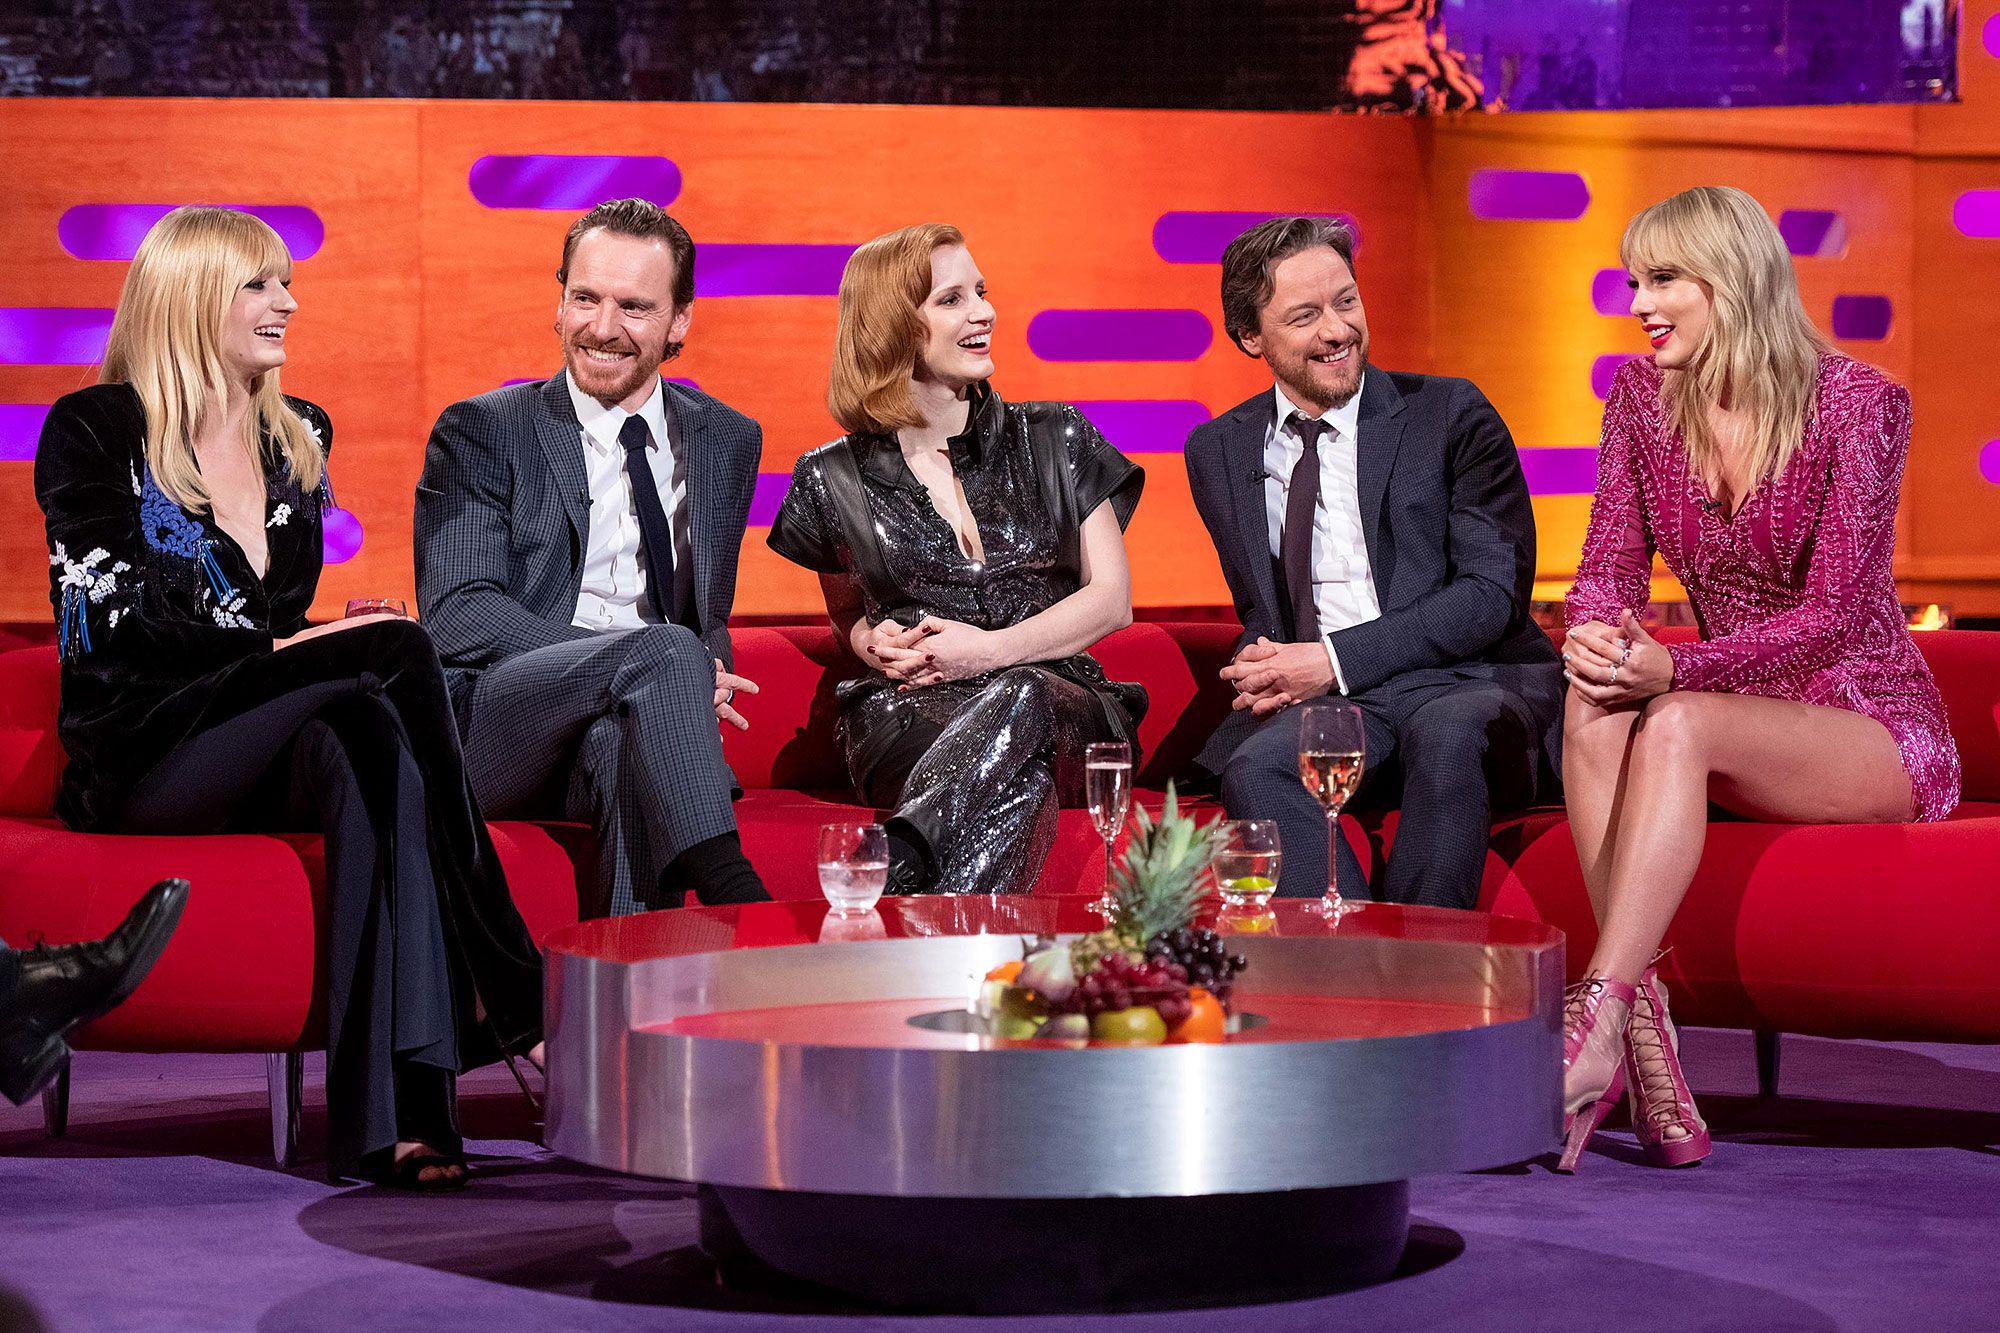 Taylor Swift and Sophie Turner Graham Norton Show - The Dark Phoenix cast shared a laugh with Swift.